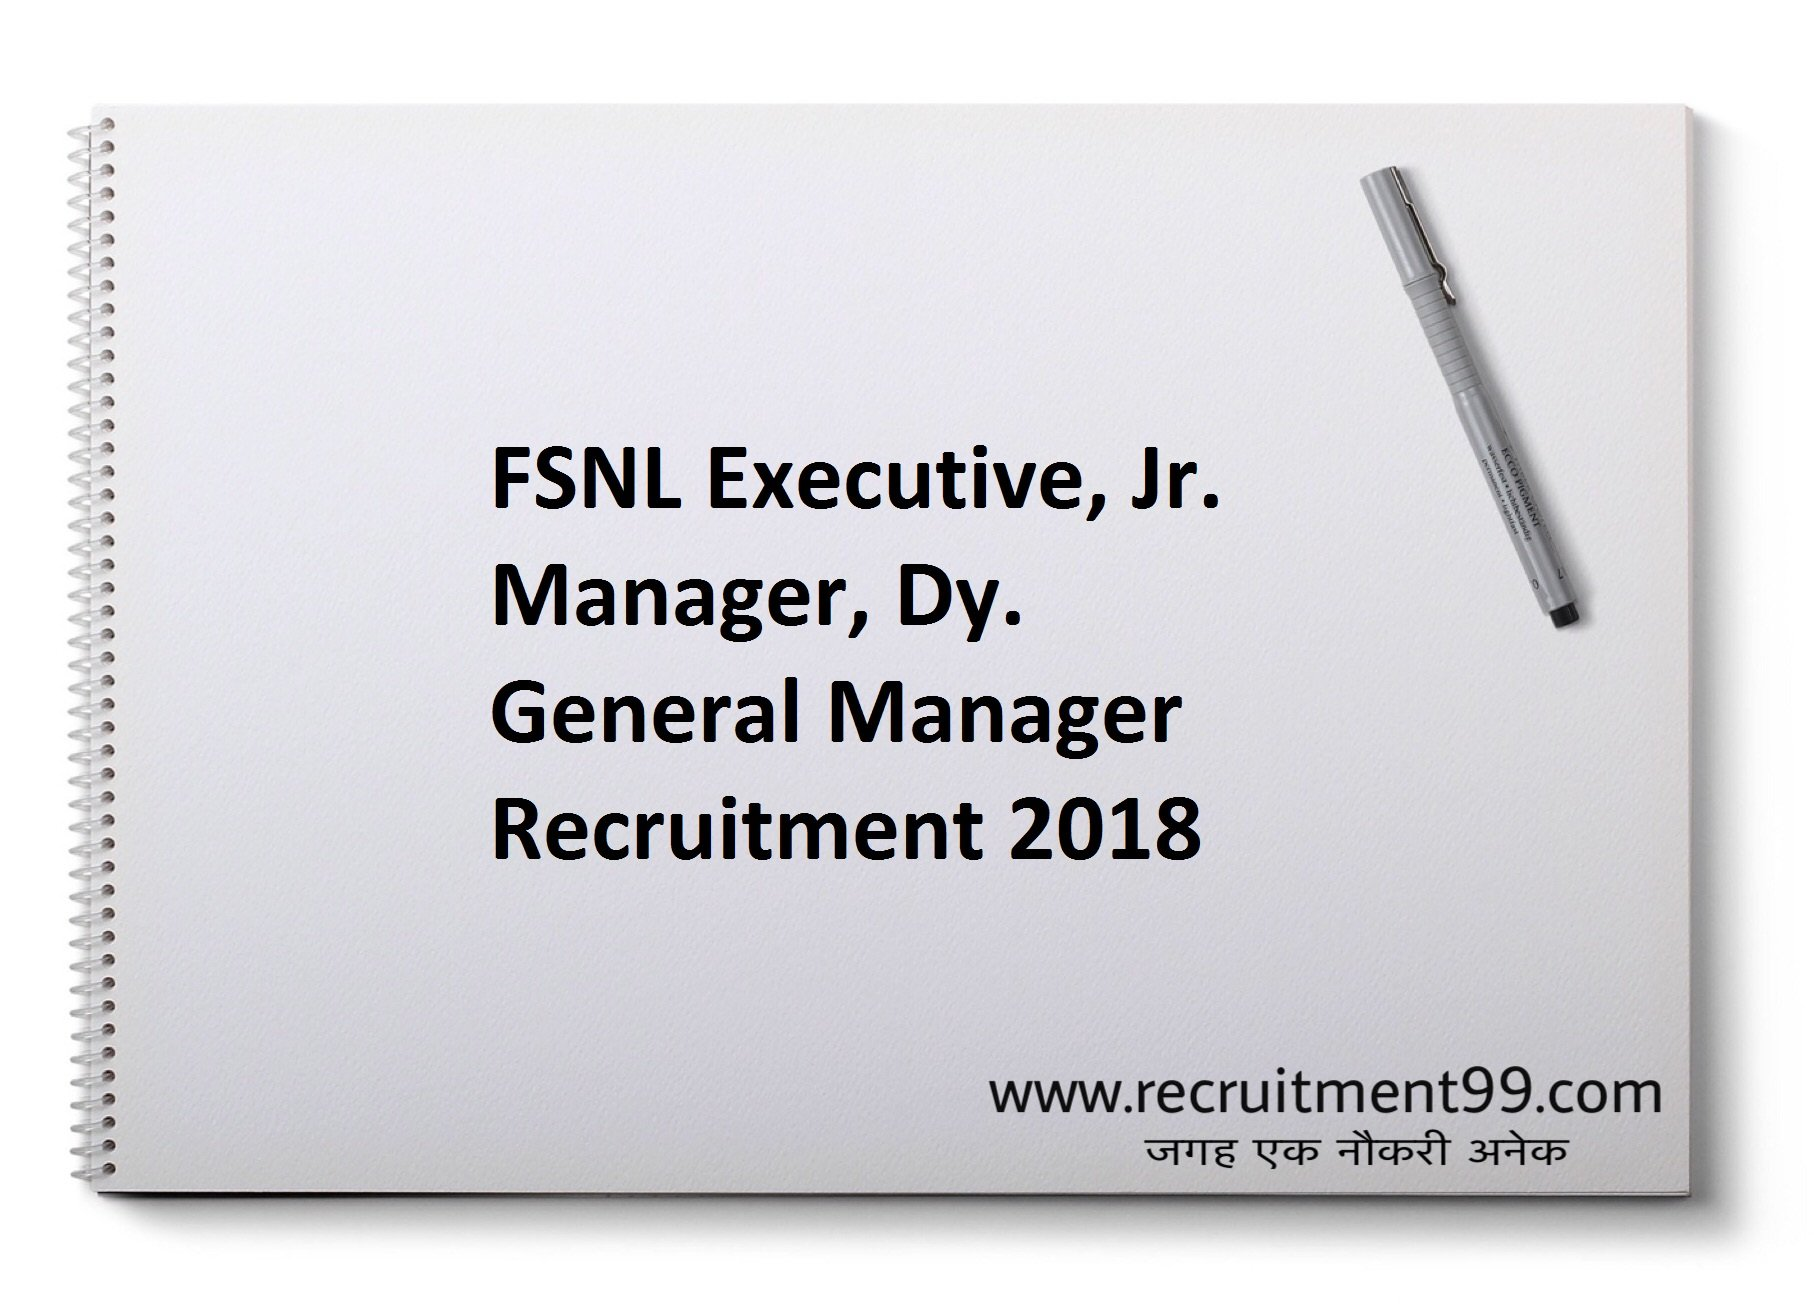 FSNL Executive Jr. Manager Dy. General Manager Recruitment Admit Card Result 2018